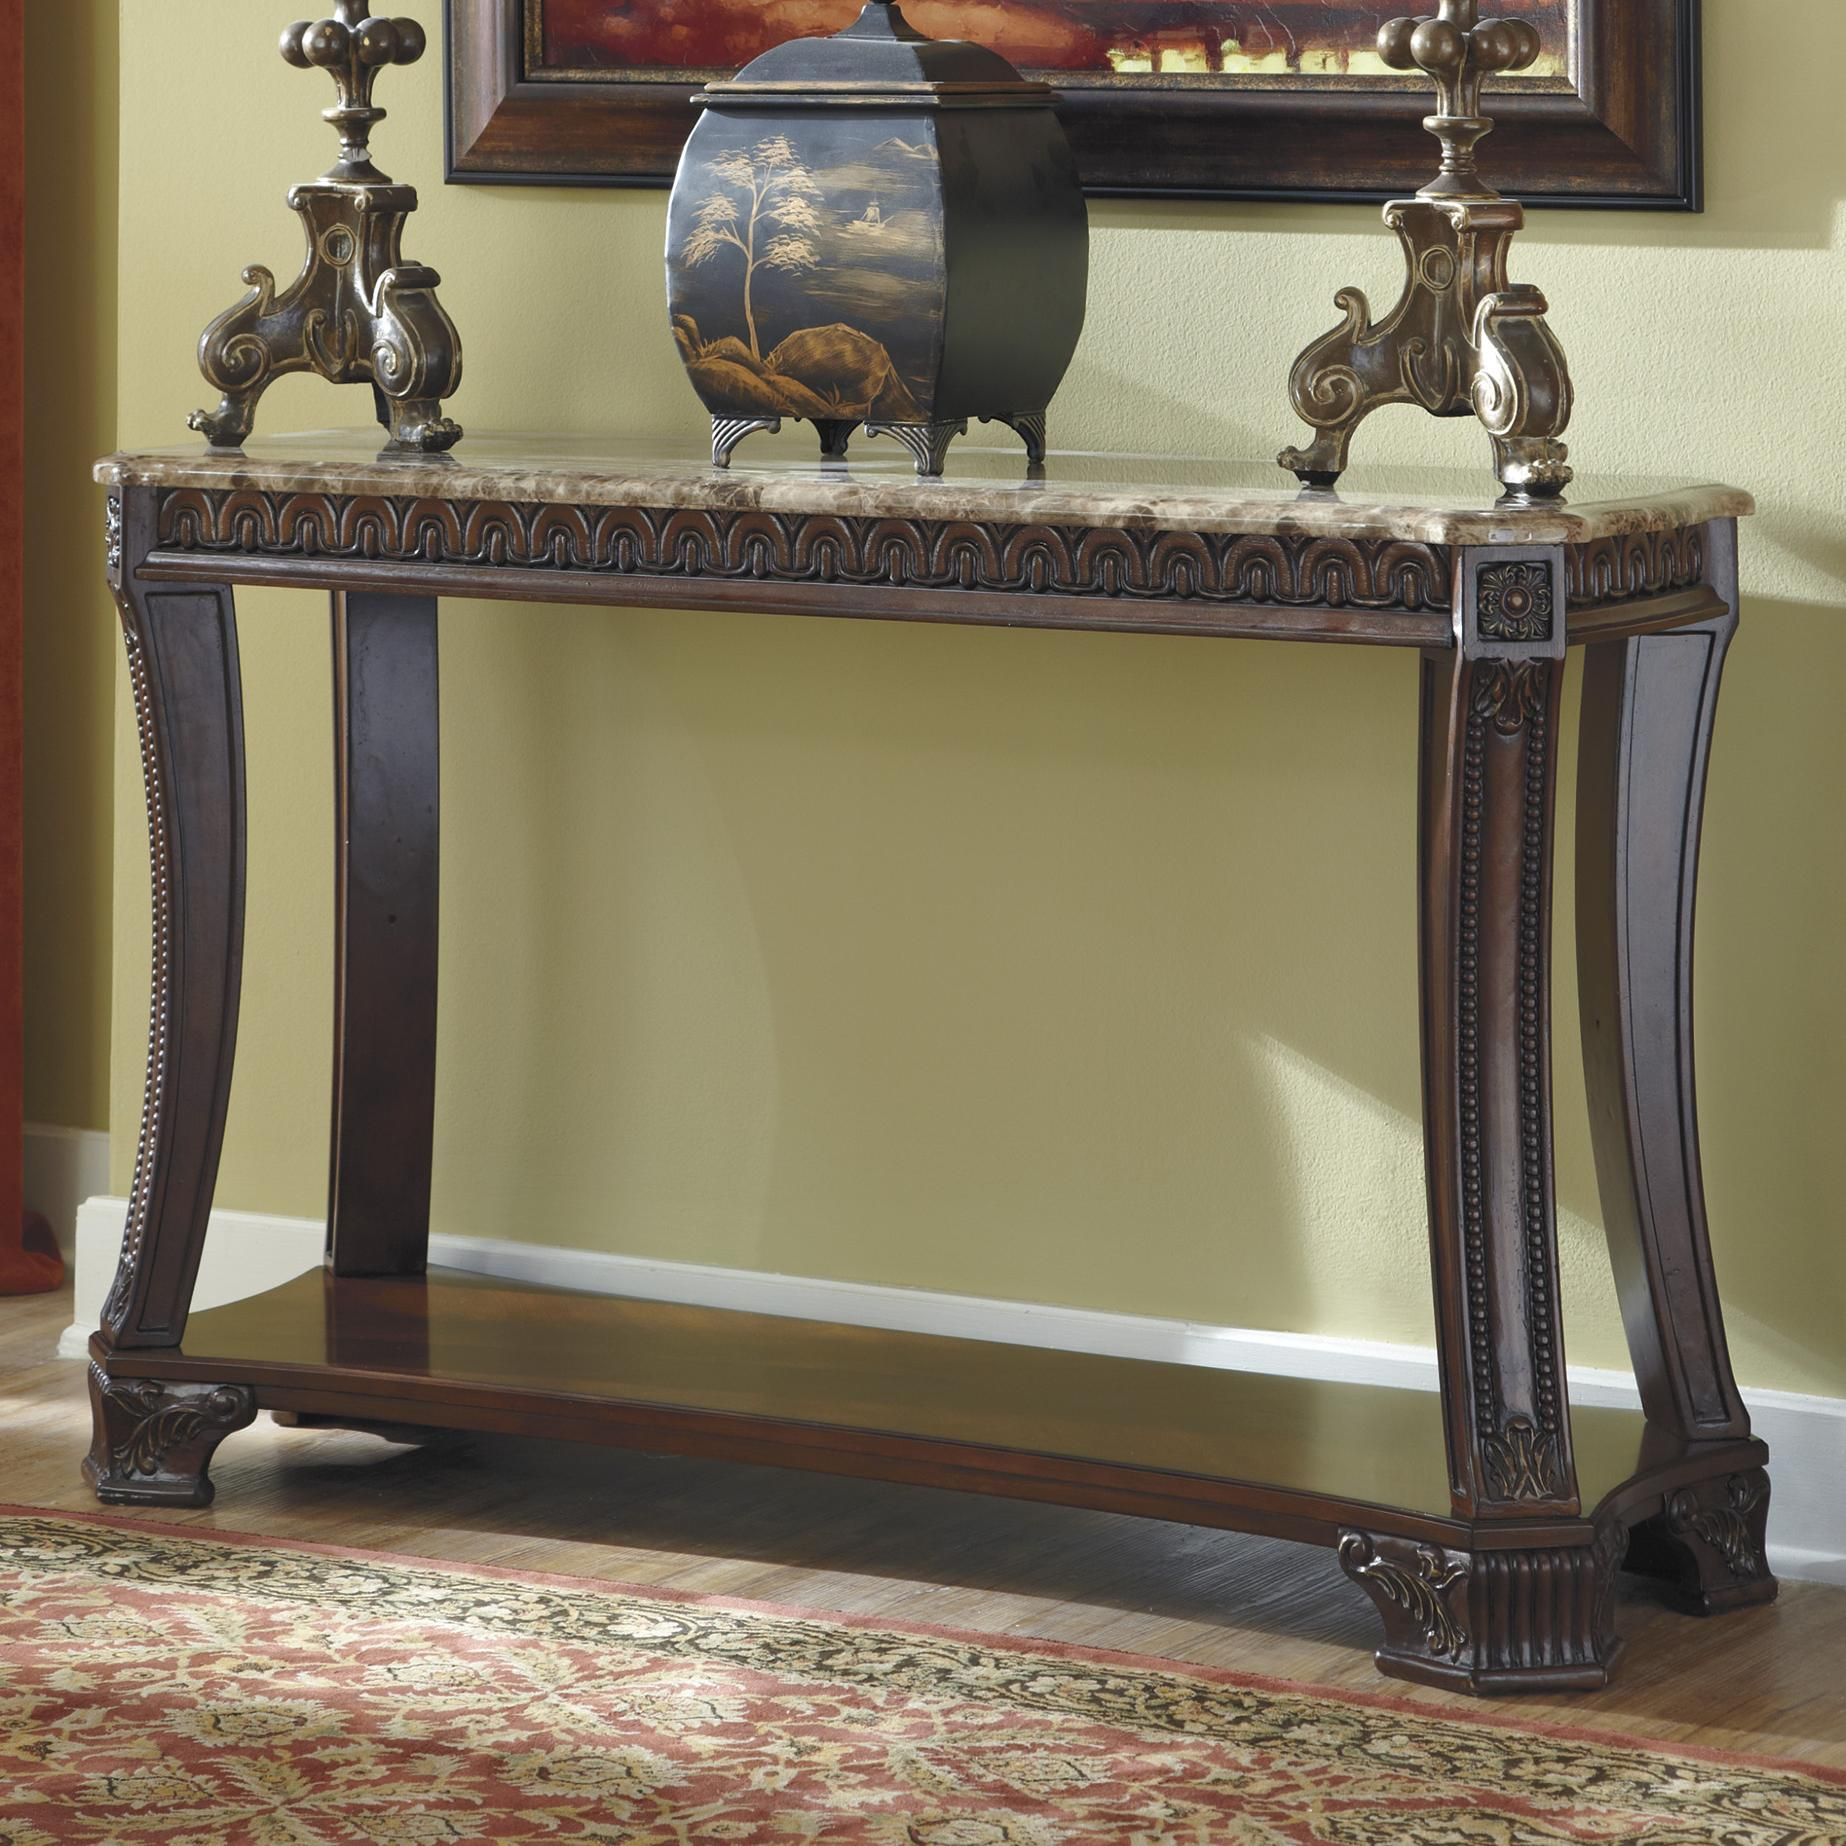 Ledelle Sofa Table By Signature Design By Ashley With Images Ashley Furniture Wood Sofa Table